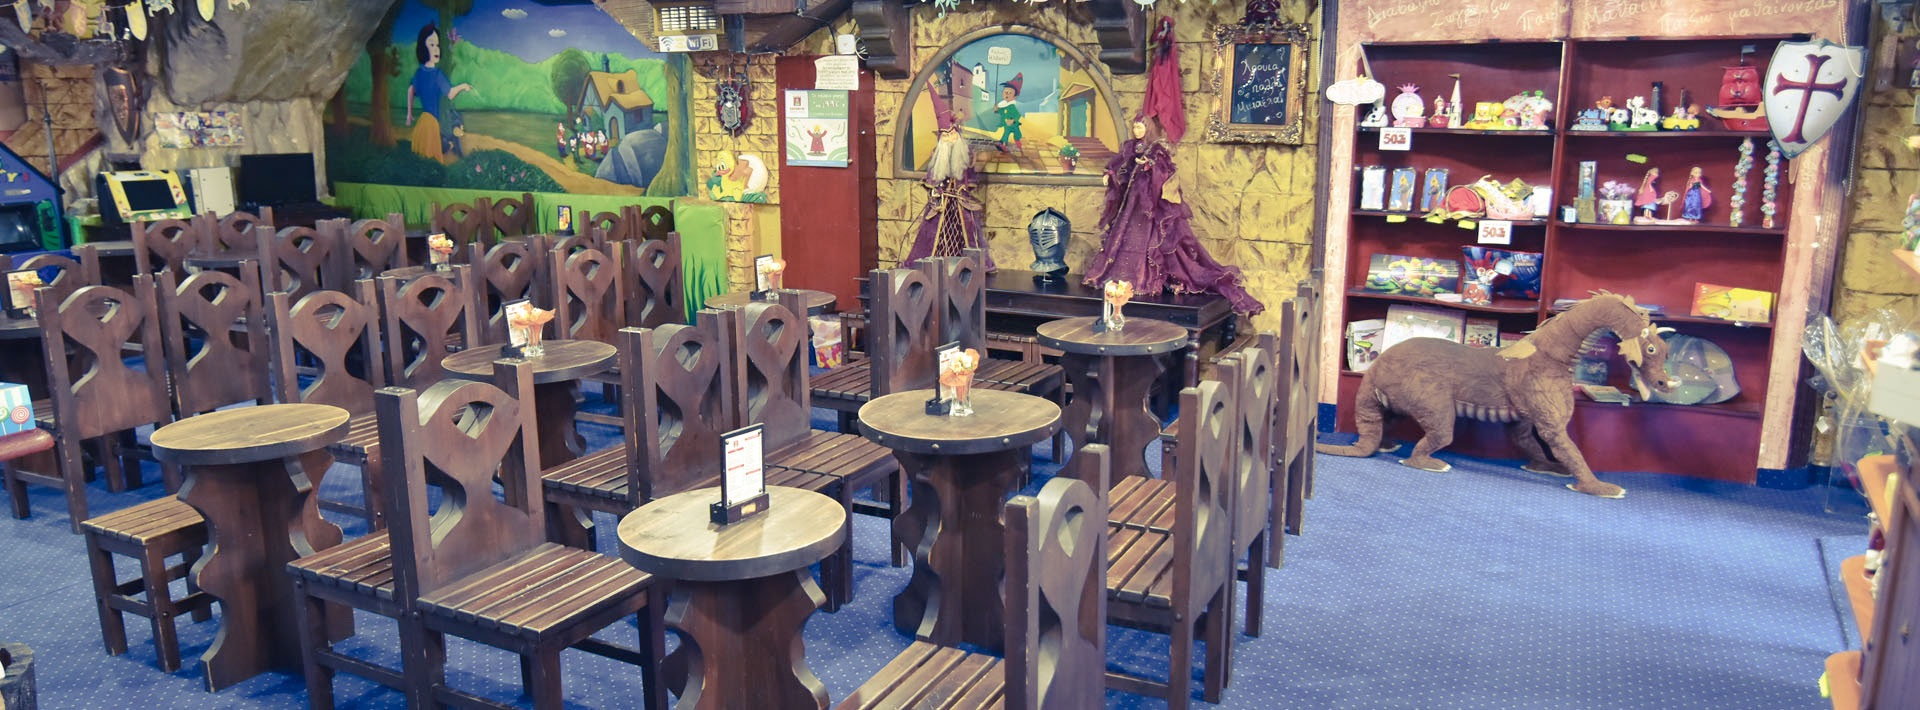 athens where to eat with kids